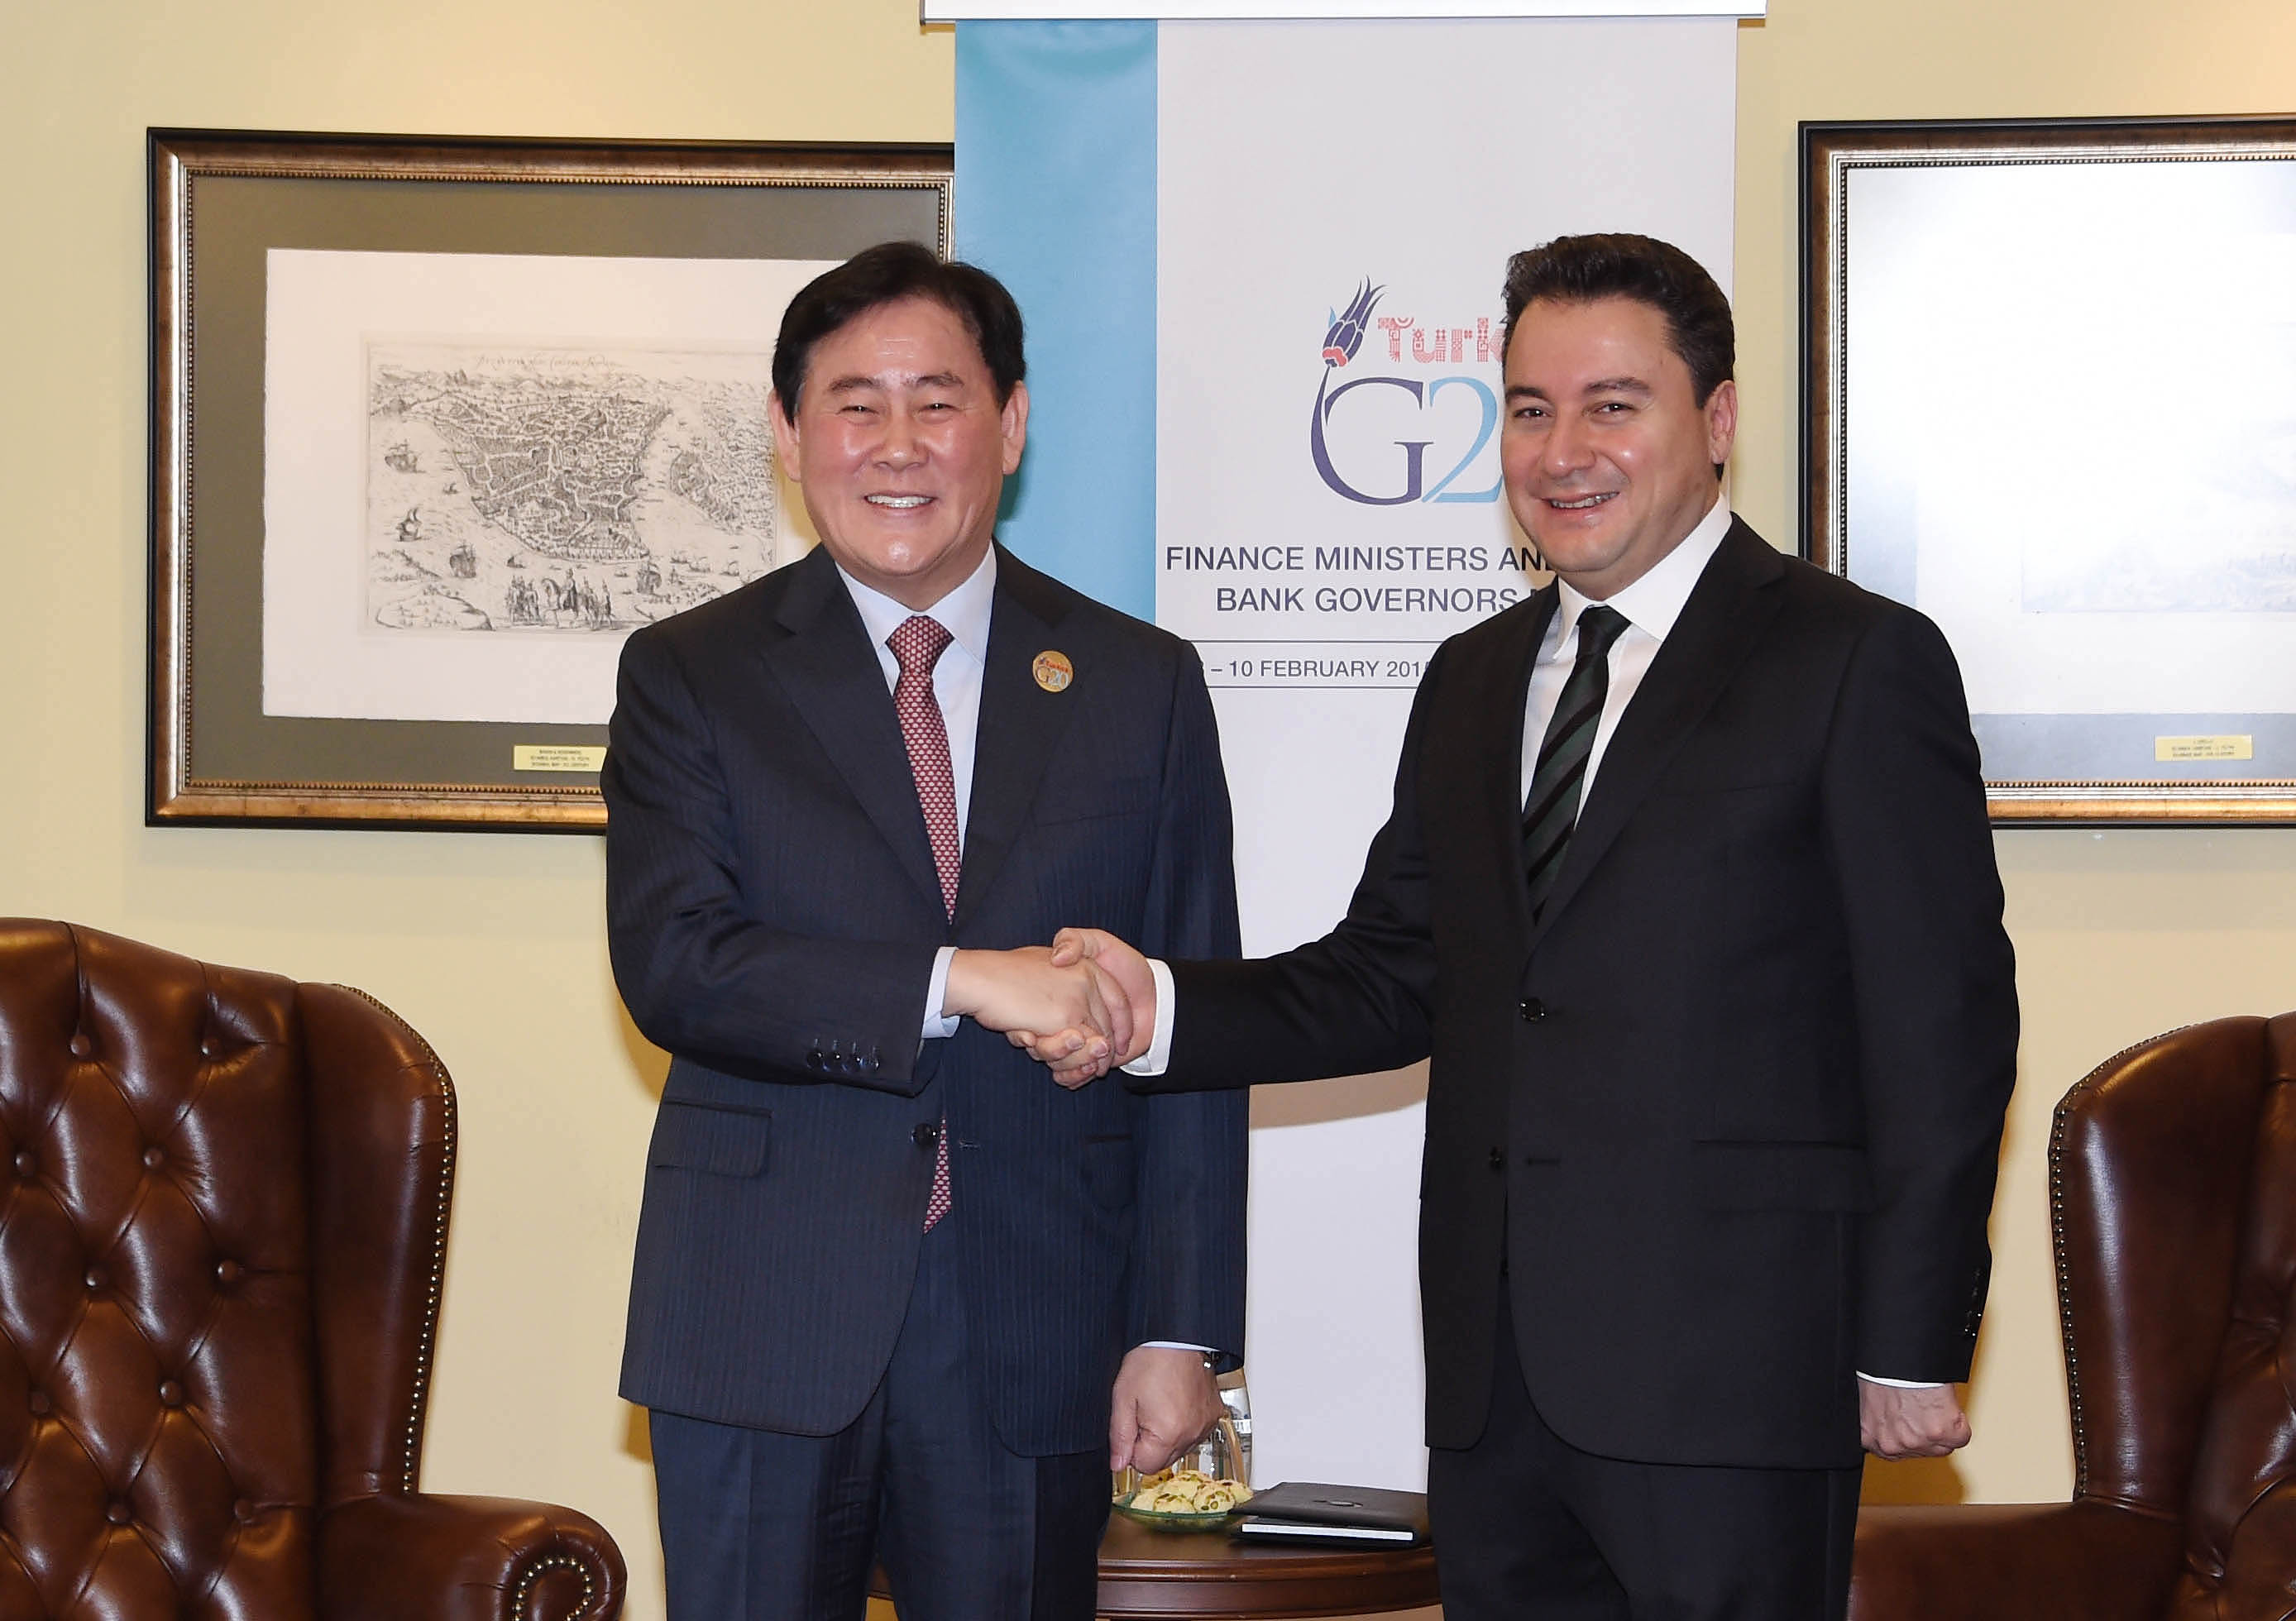 Deputy Prime Minister Choi meets with counterparts during Istanbul G20 Meeting